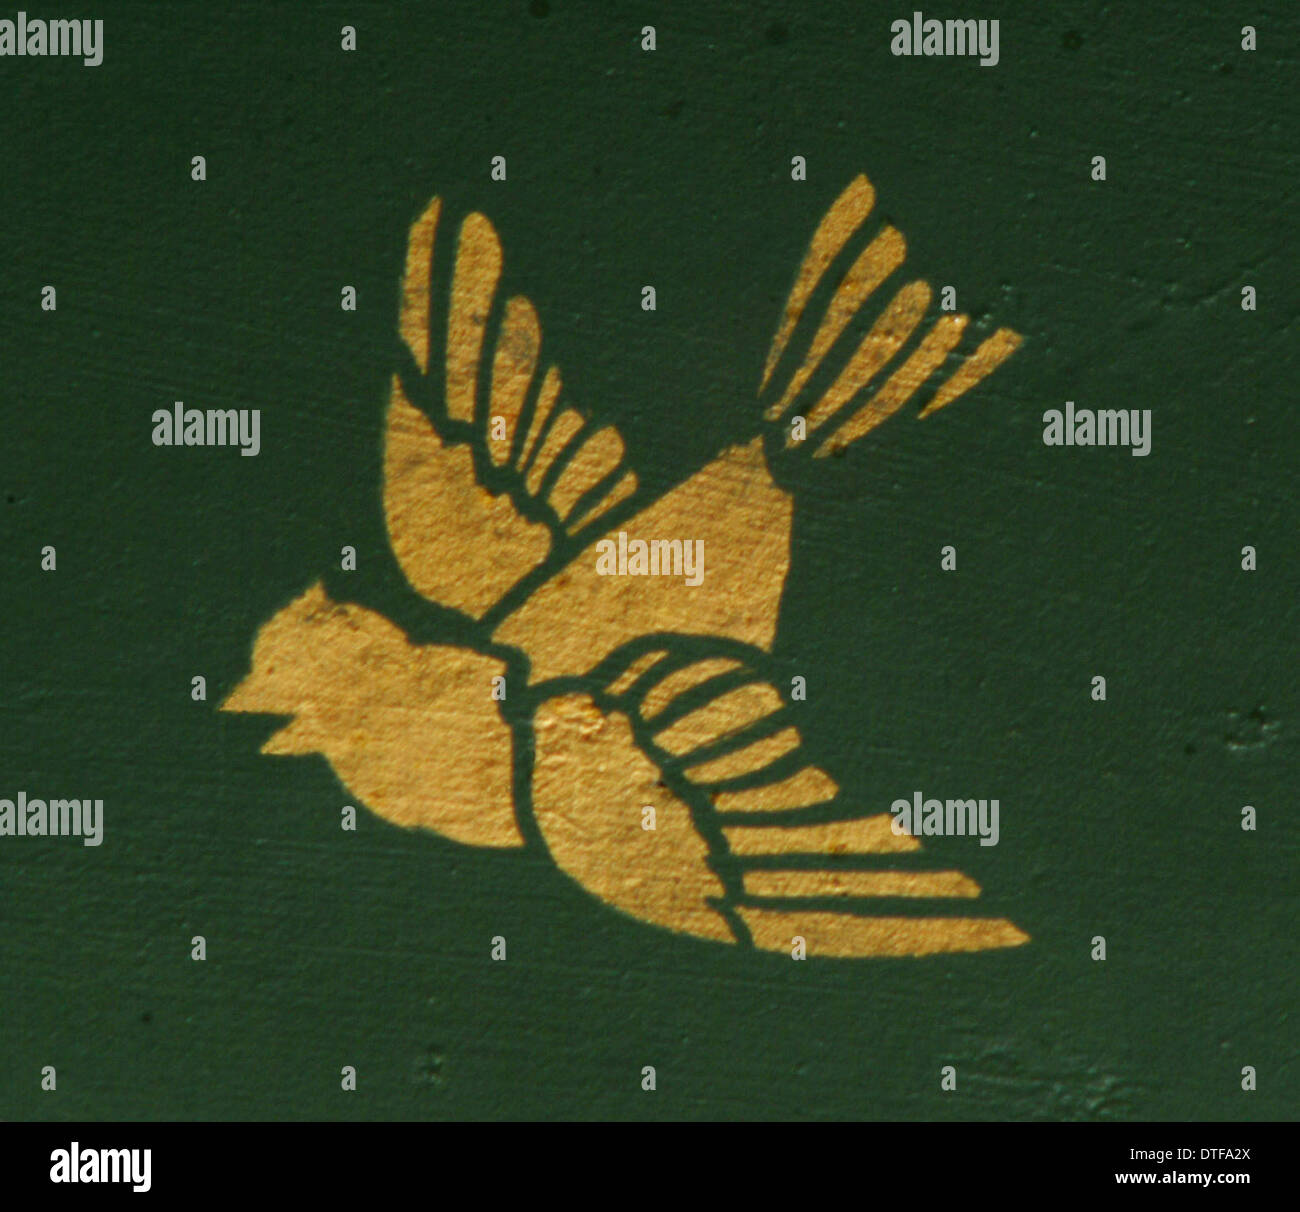 Bird from decorative ceiling panels - Stock Image